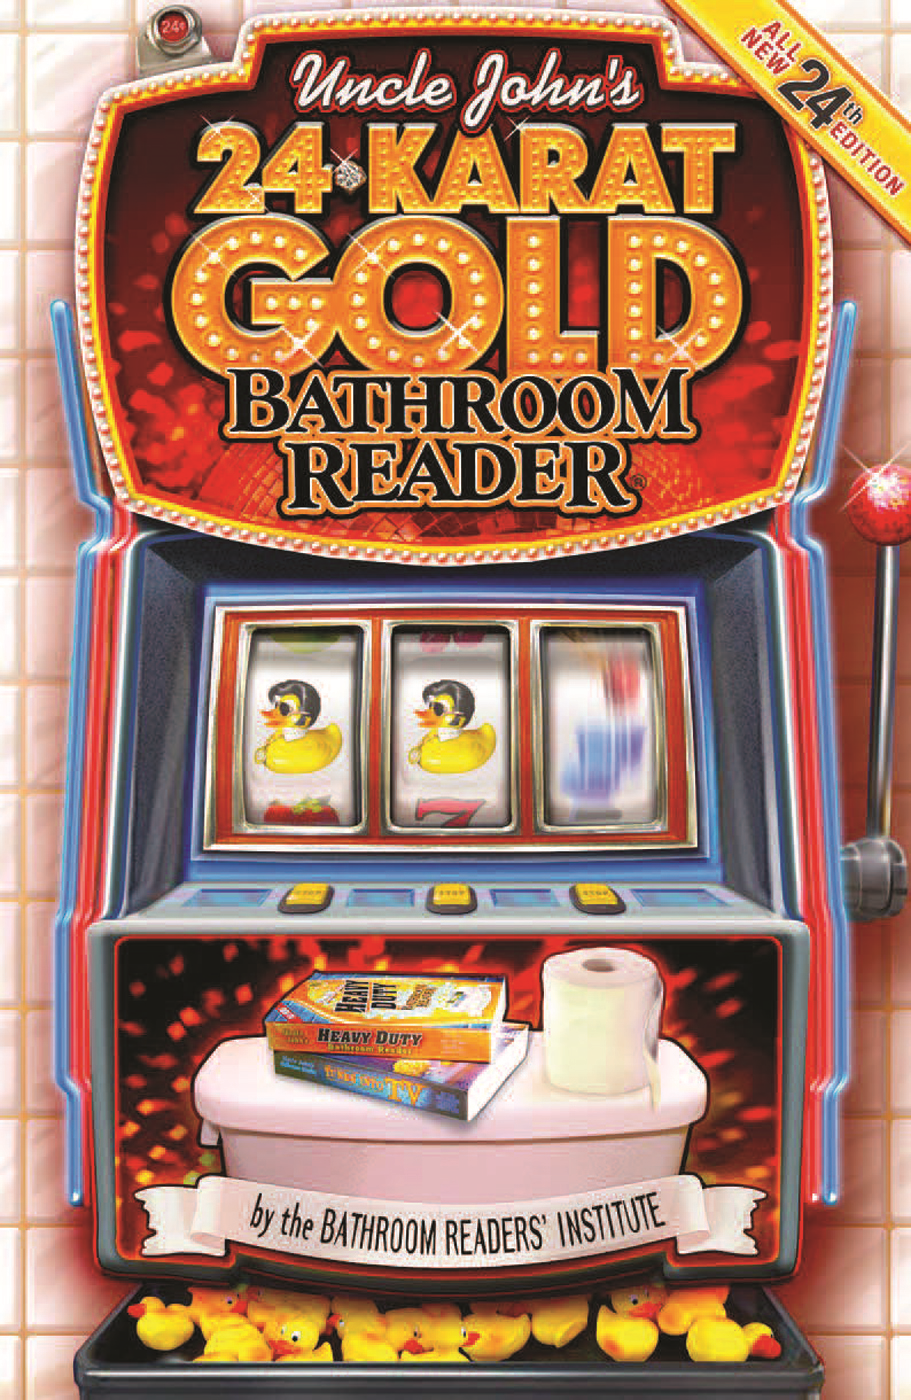 Uncle John's 24-Karat Gold Bathroom Reader By: Bathroom Readers' Institute